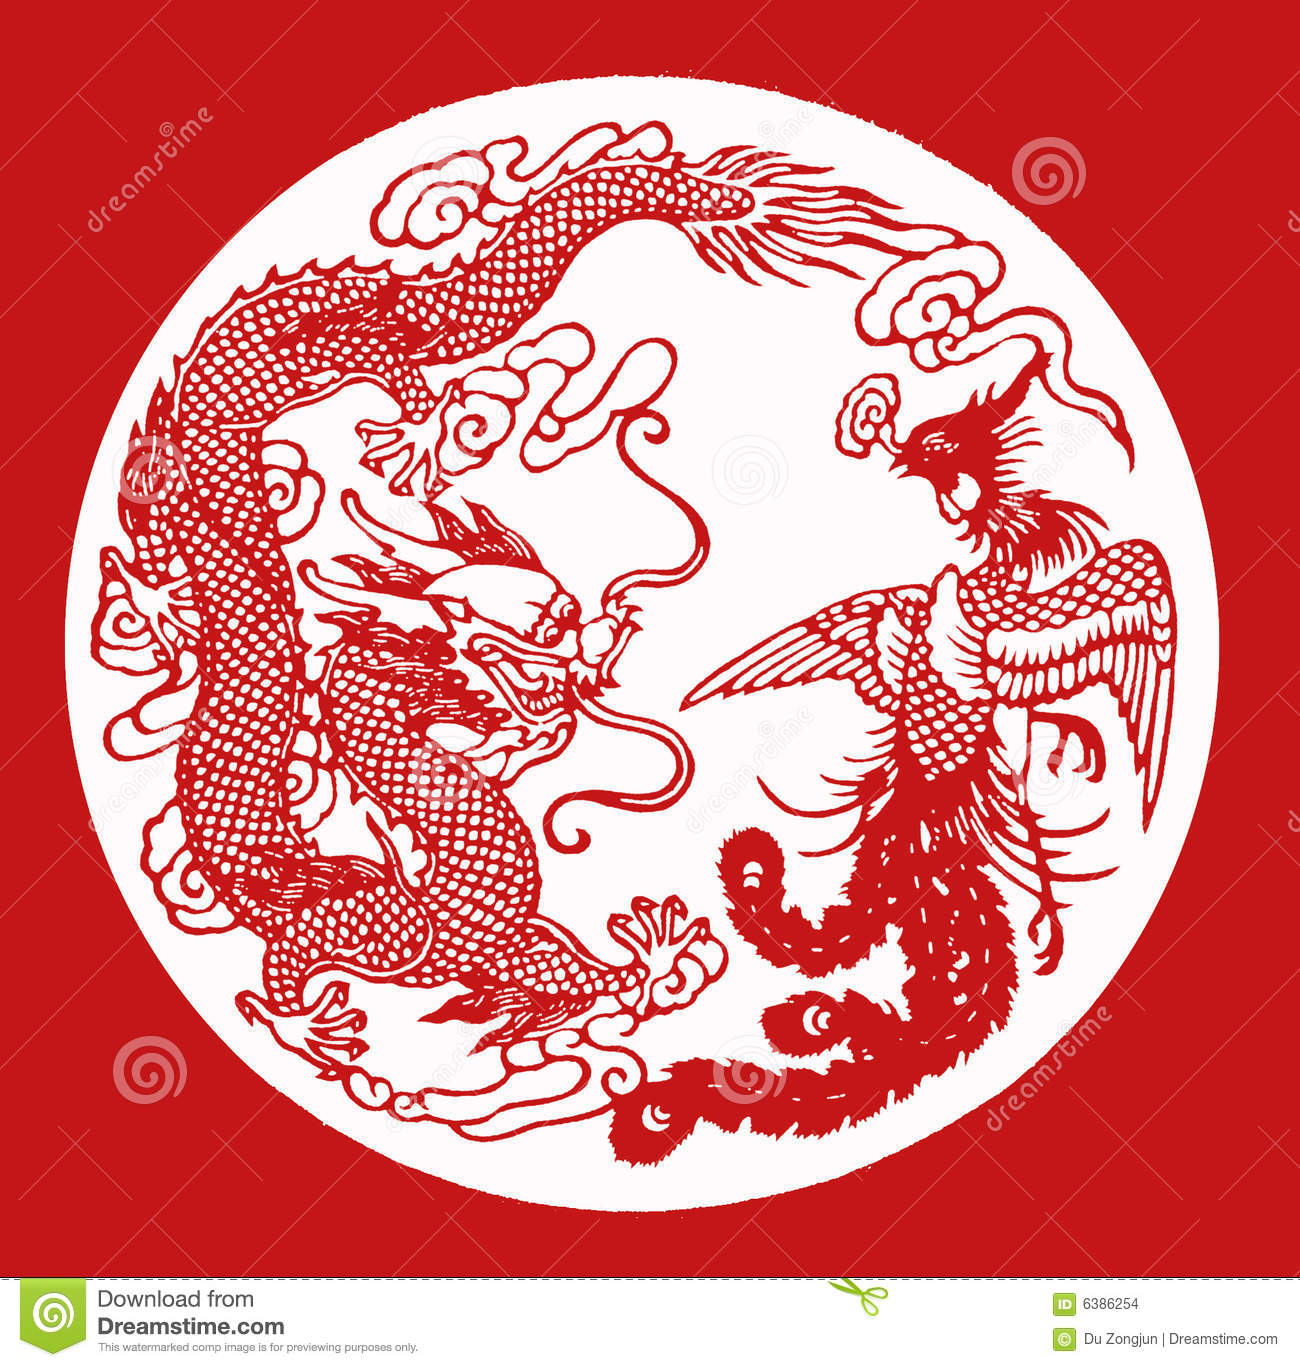 China paper cut dragon phoenix stock photo image 6386254 for Chinese paper cutting templates dragon